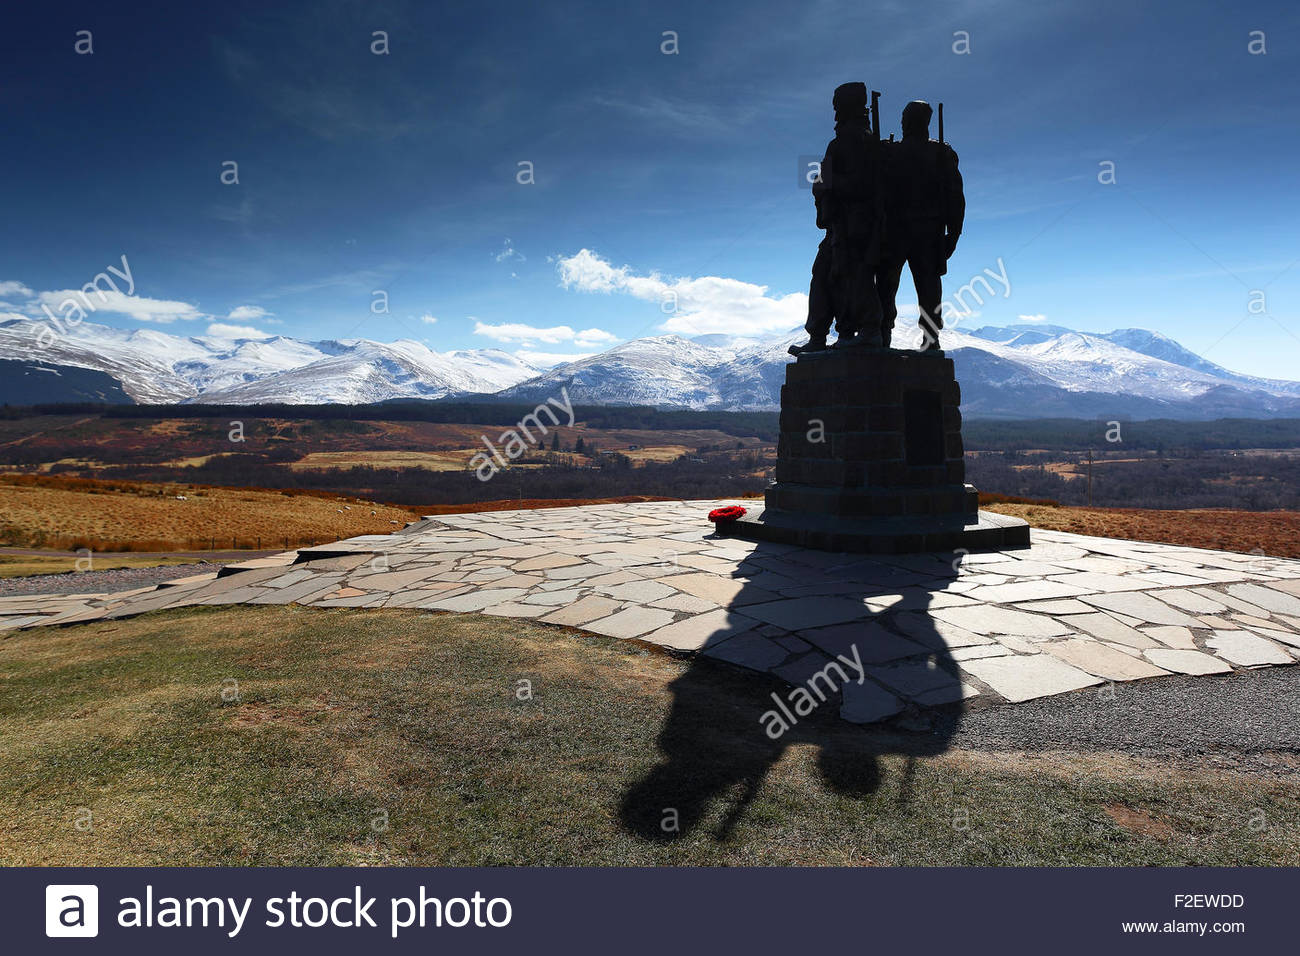 The Commando memorial monument in silhouette with the snow covered Ben Nevis mountain range in the distance. - Stock Image